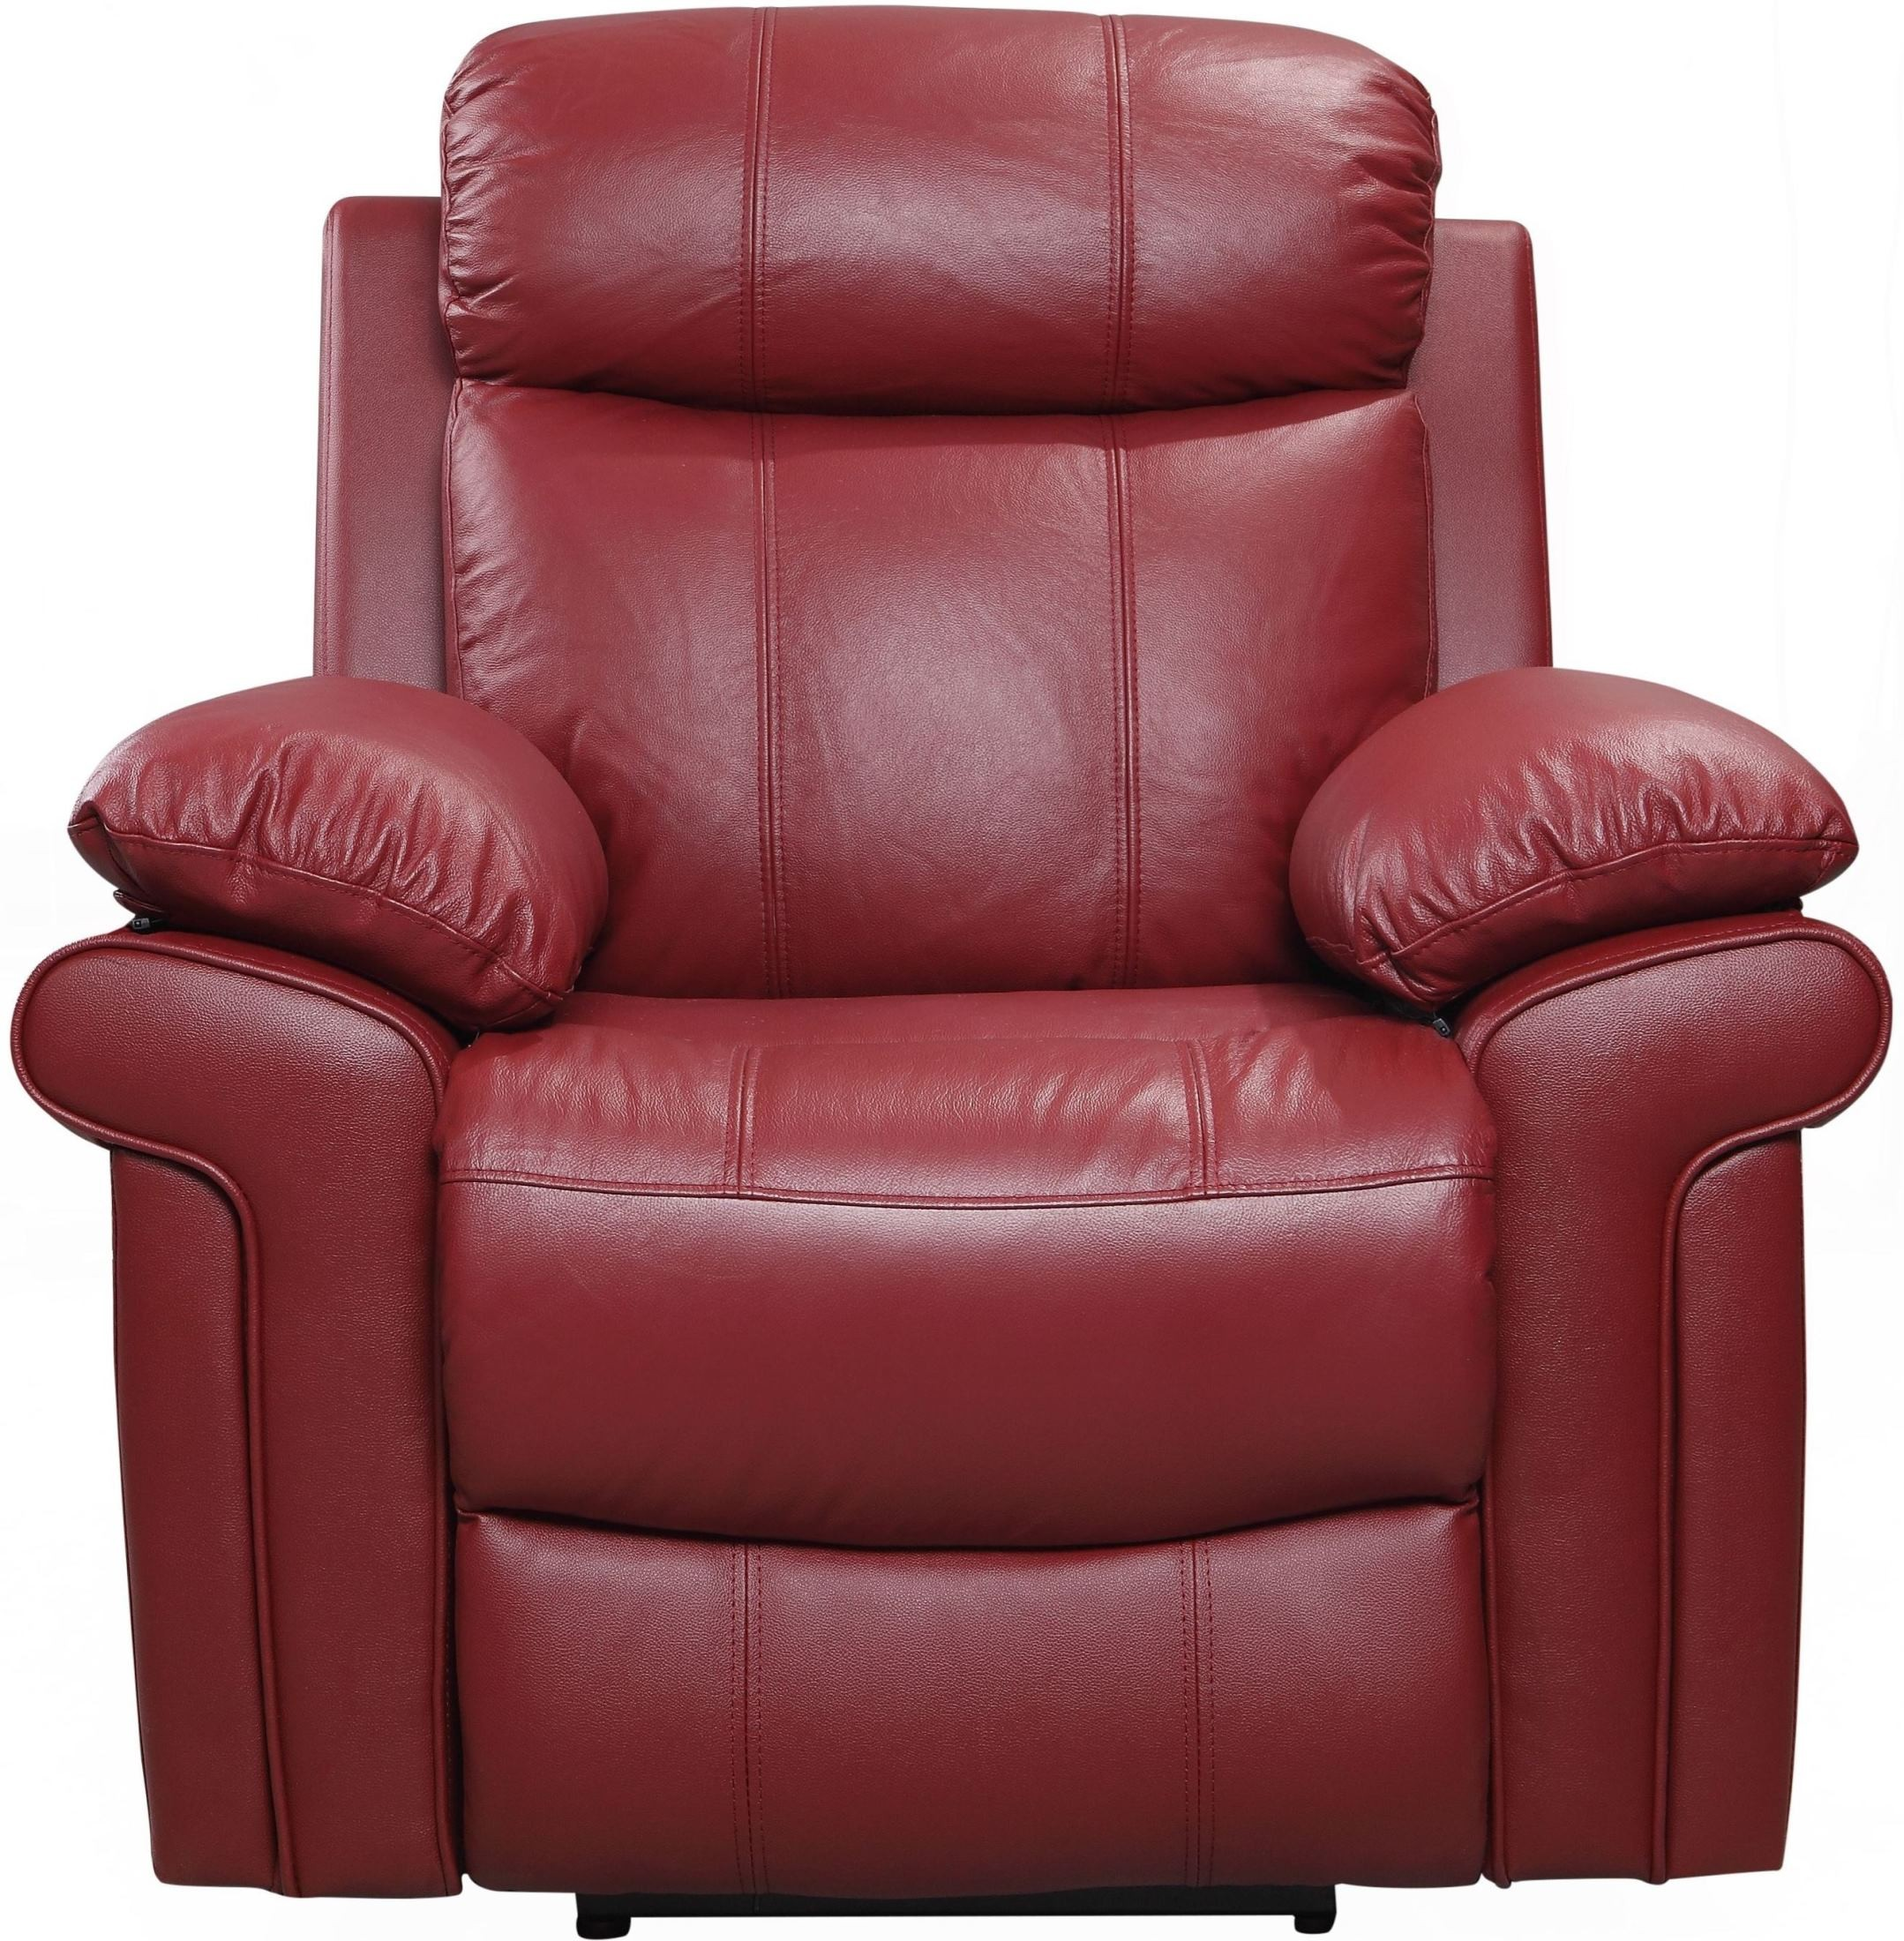 Shae joplin red leather power reclining sofa 1555 e2117 - Red leather living room furniture set ...